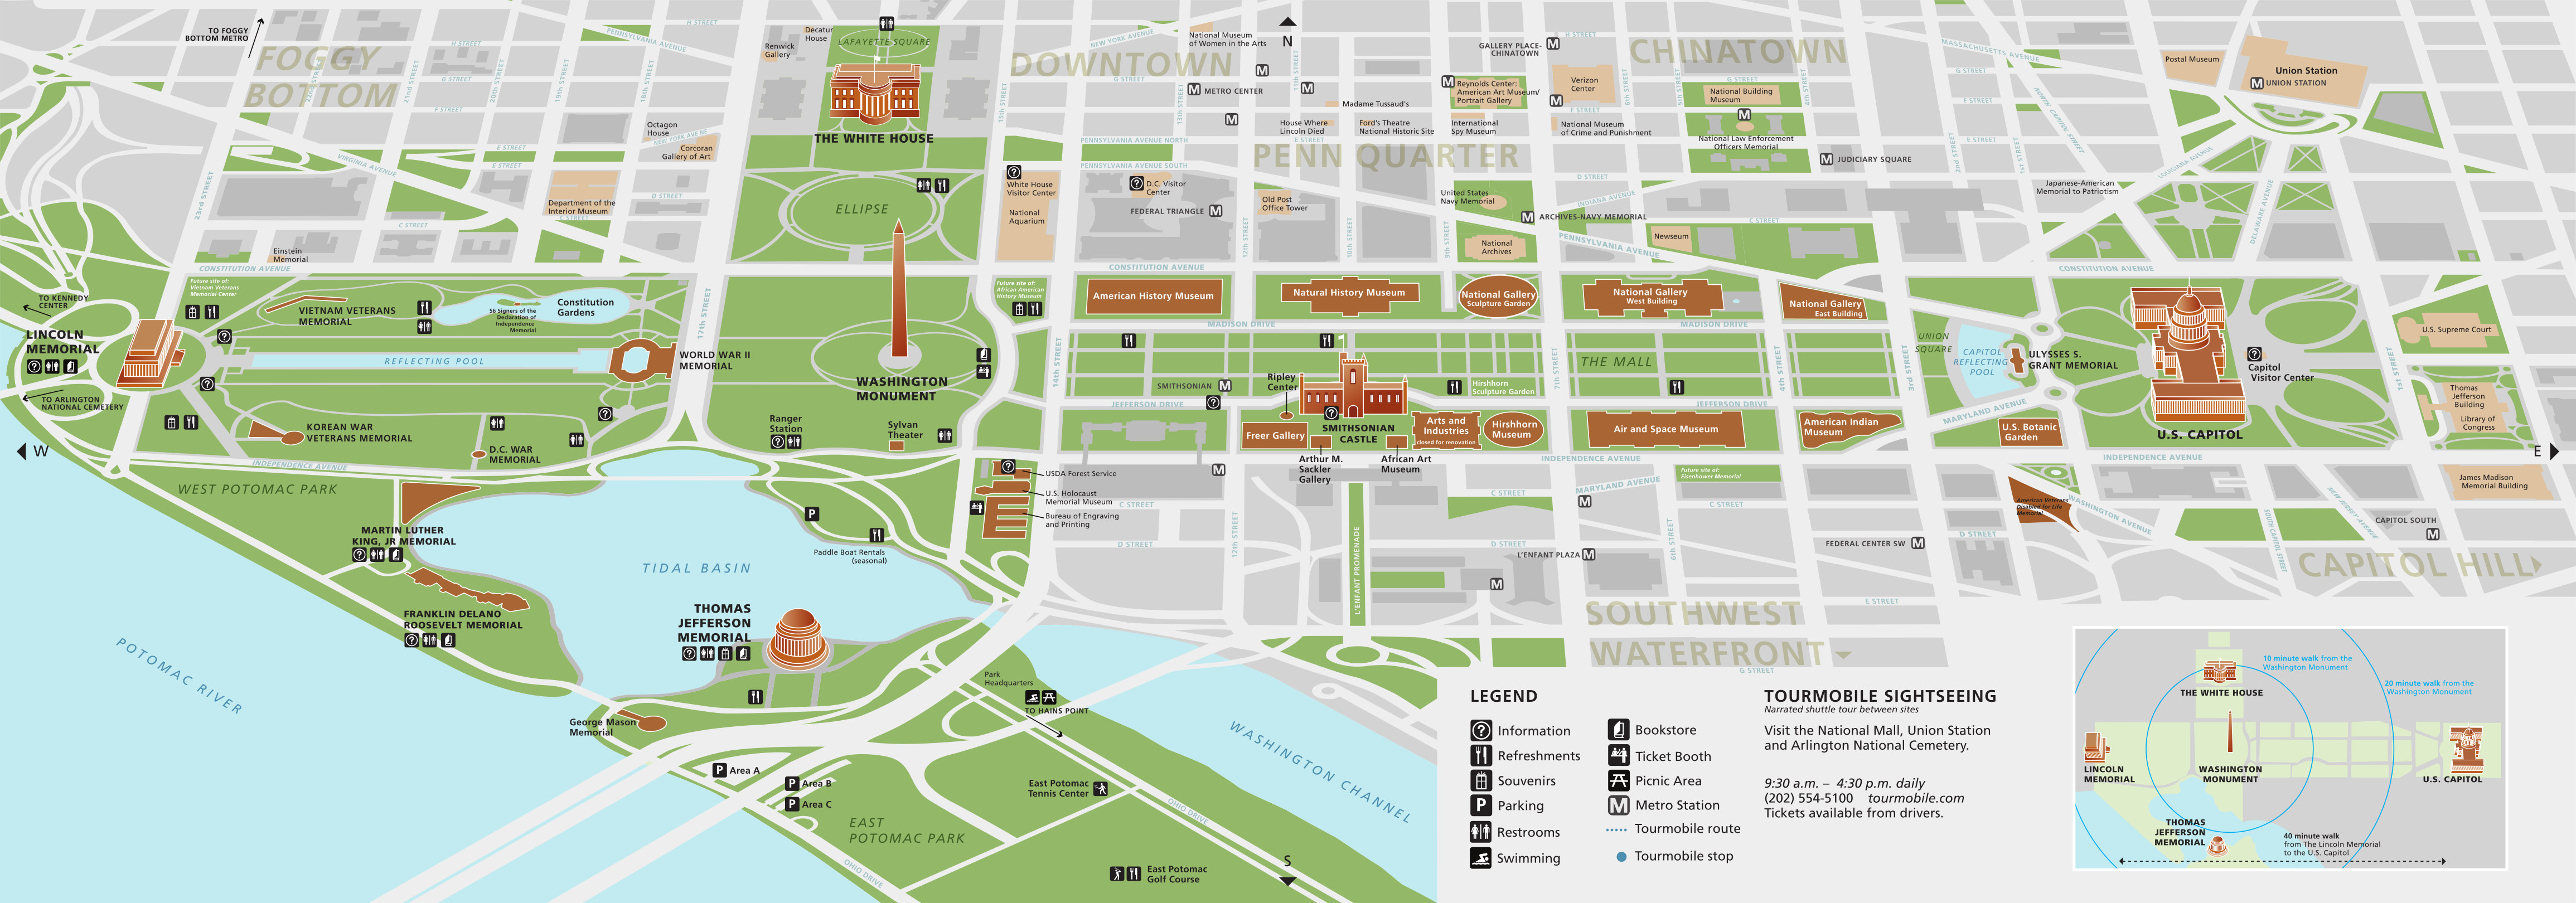 National Mall Maps | NPMaps.  just free maps, period.